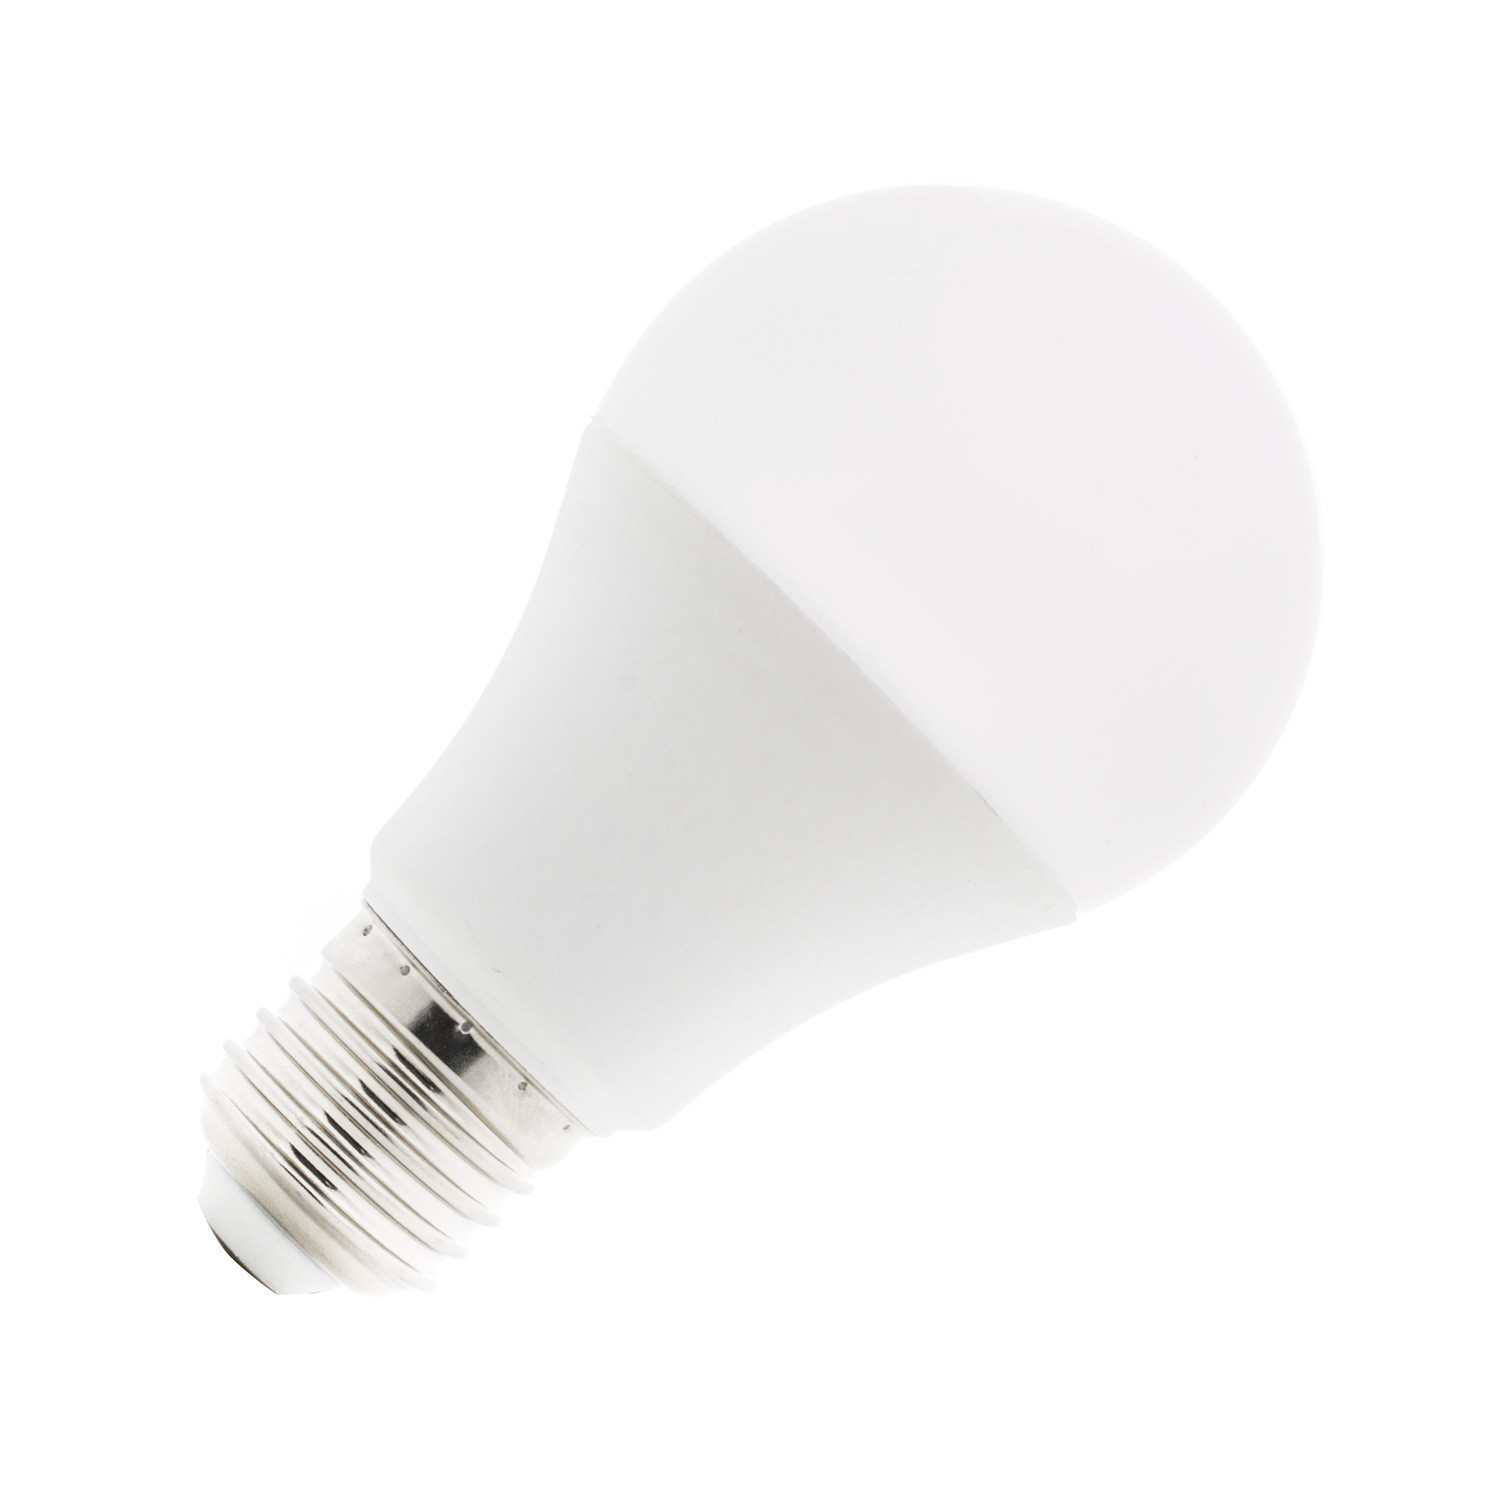 A60 E27 10w Led Bulb Led Shop Direct